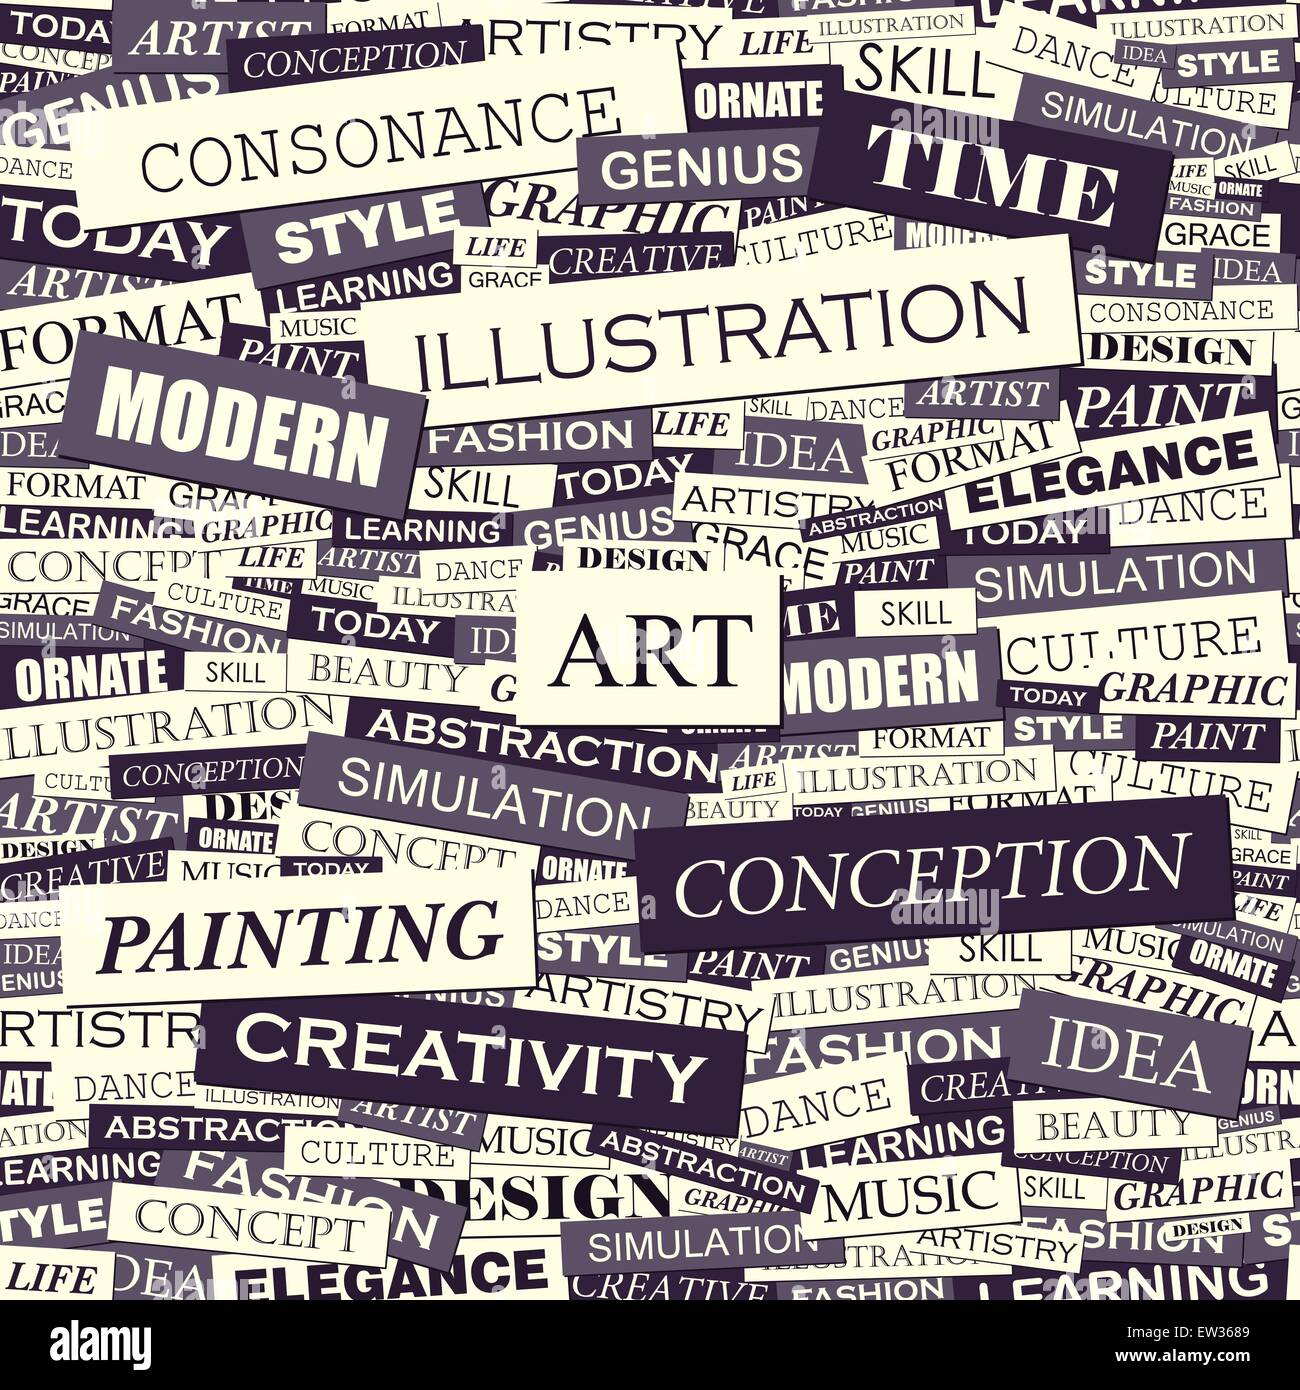 Art Seamless Pattern Concept Related Words In Tag Cloud Conceptual Stock Vector Art